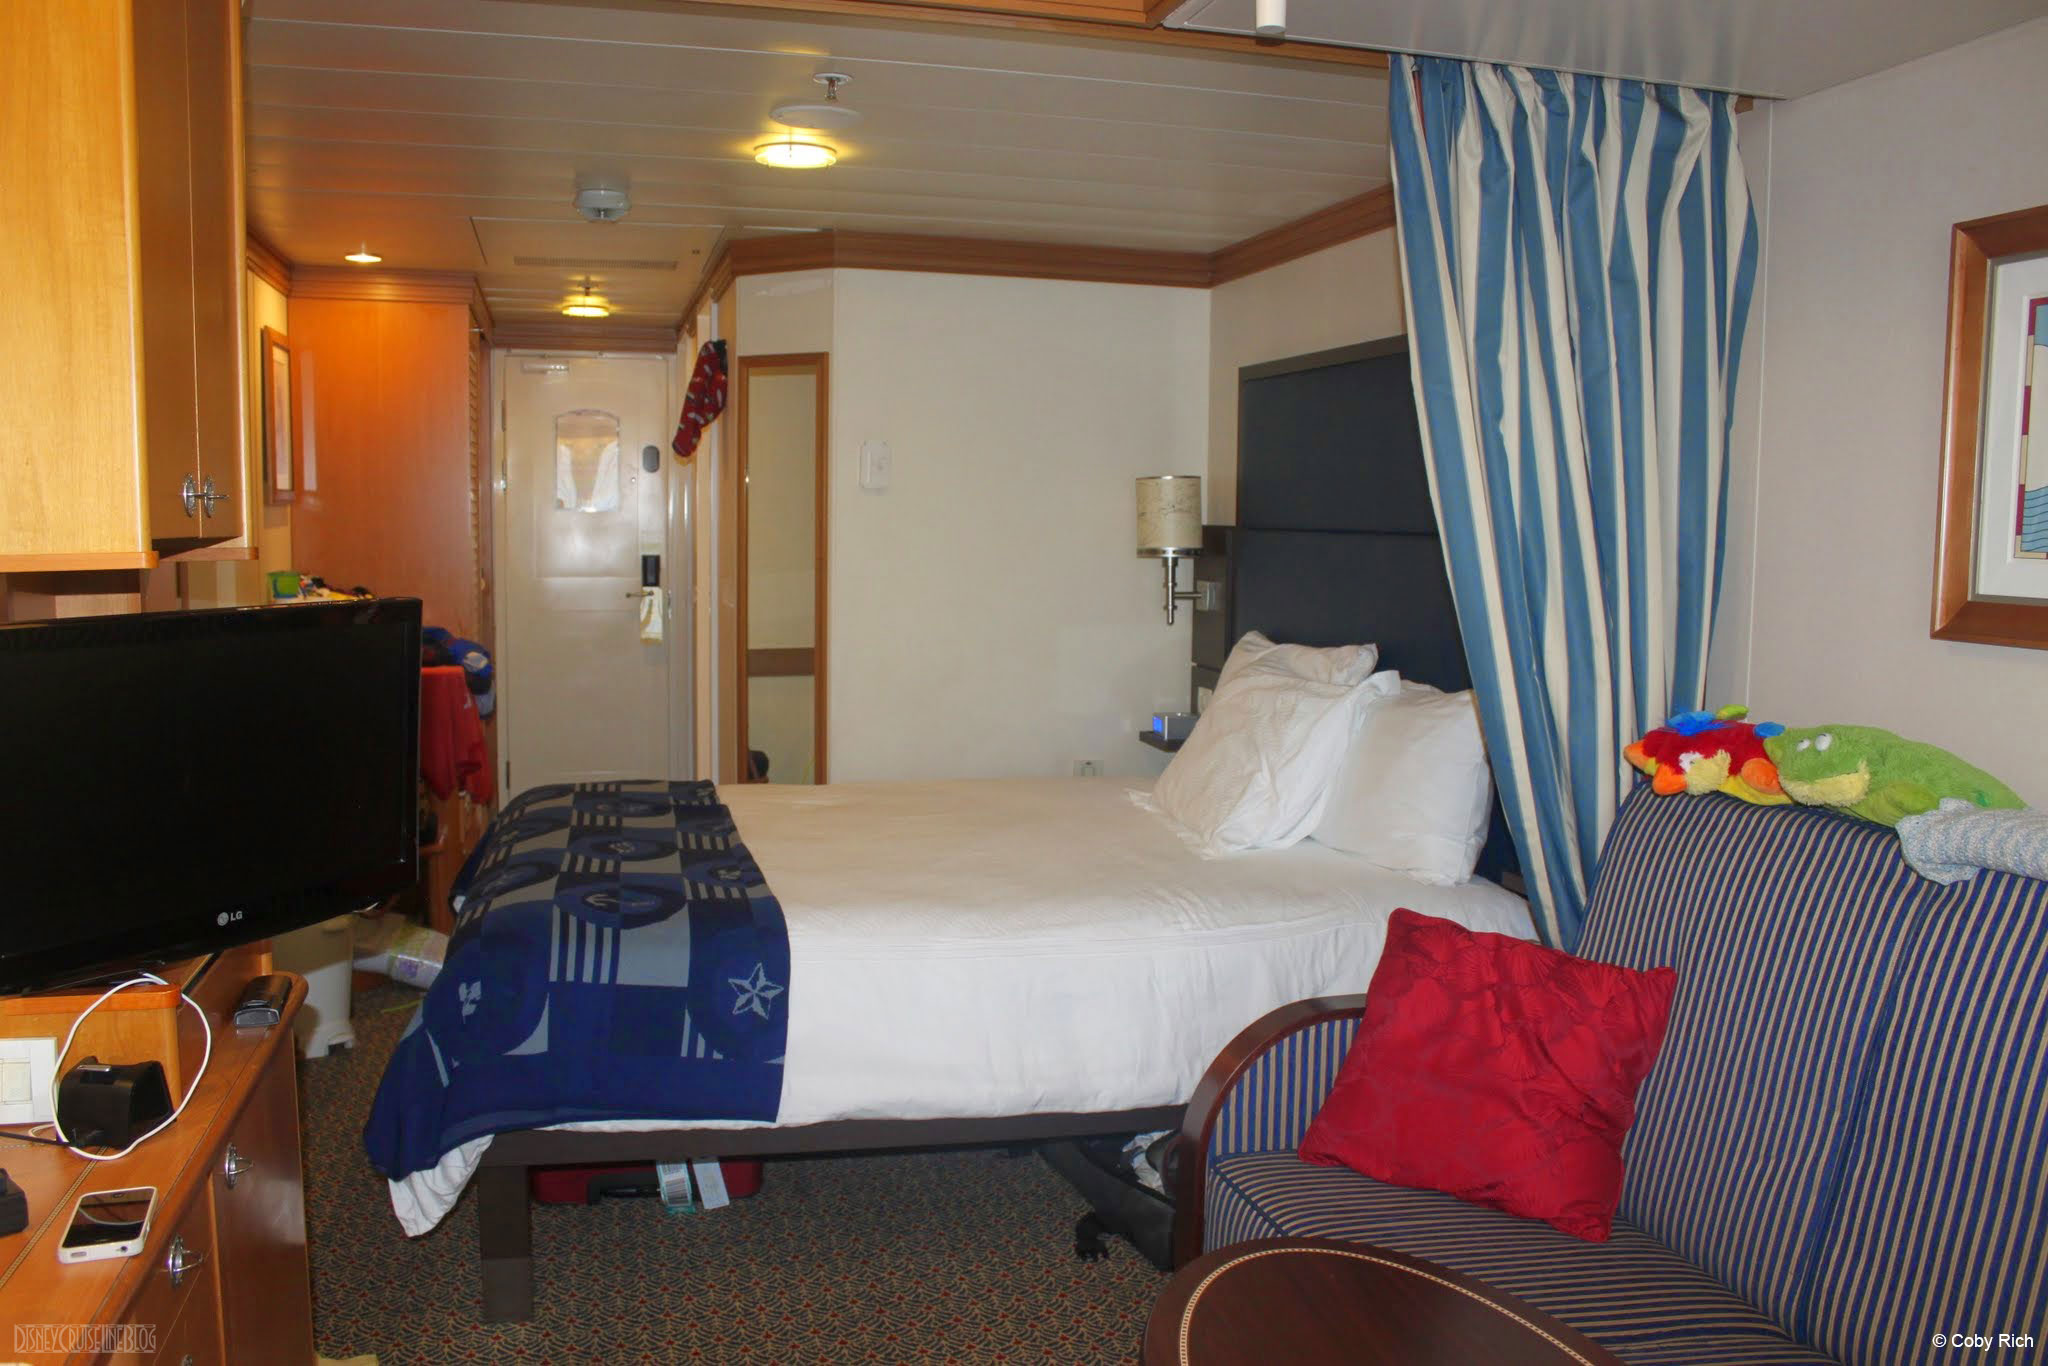 At Look At A Disney Wonder Refurbished Stateroom • The